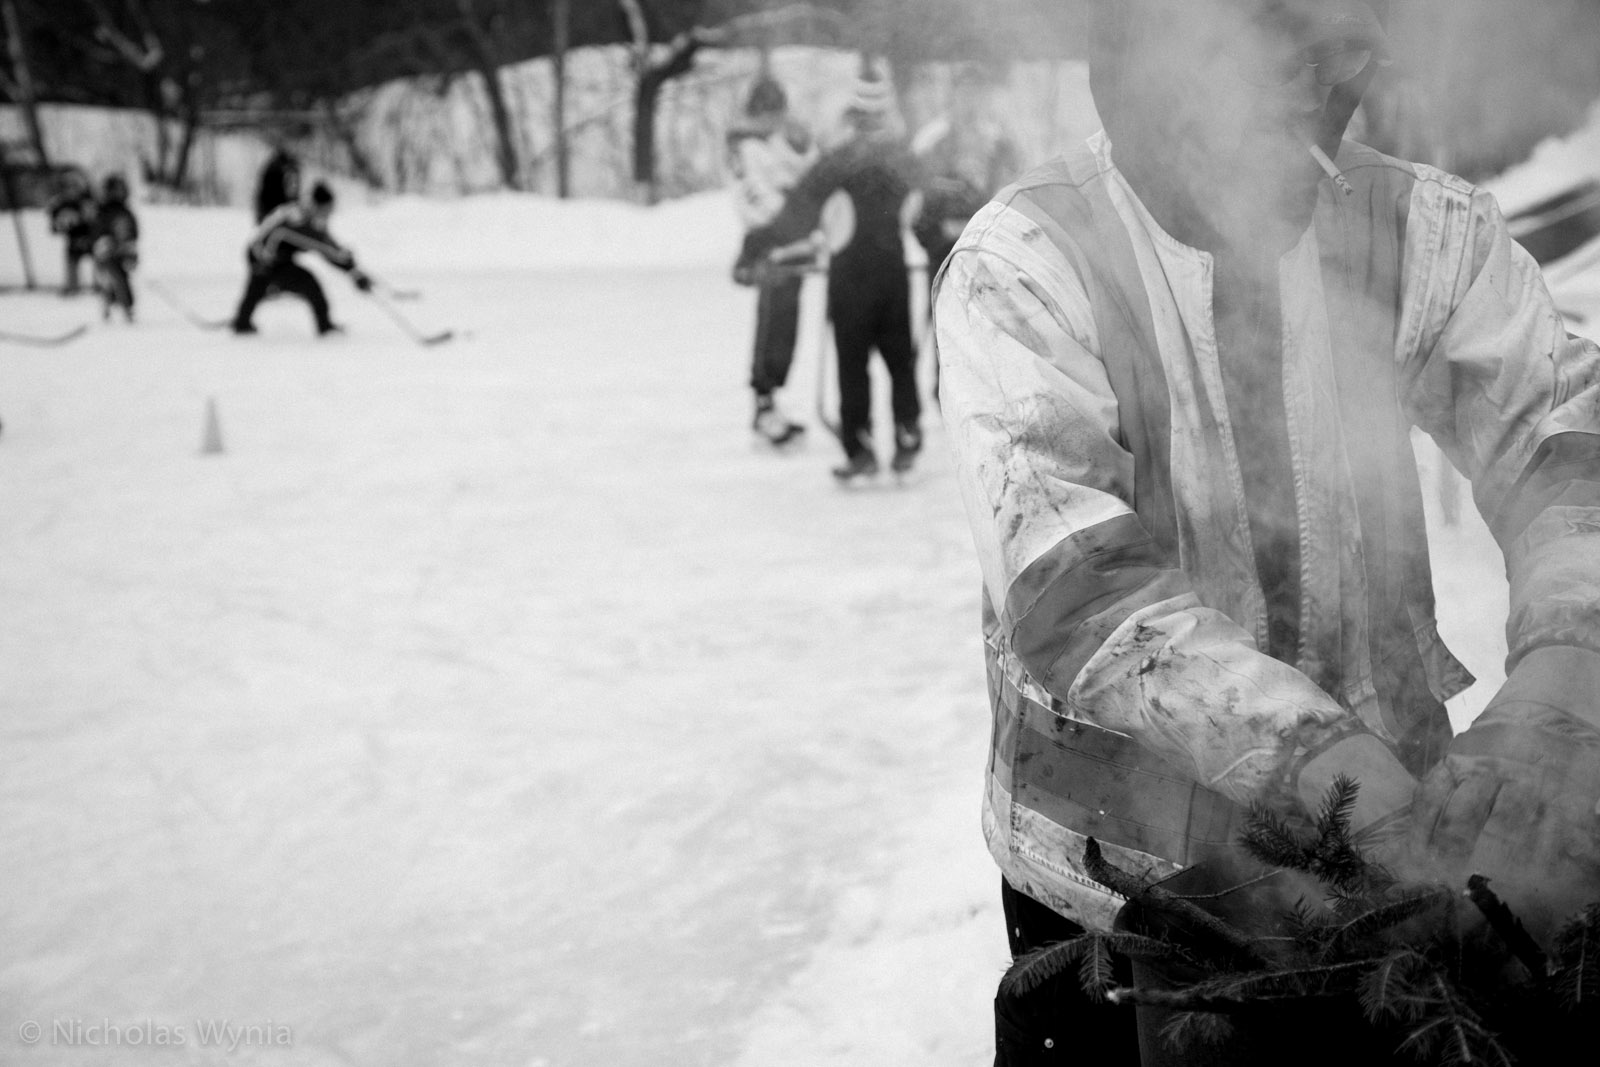 pond hockey email 1-18-15-2028.jpg